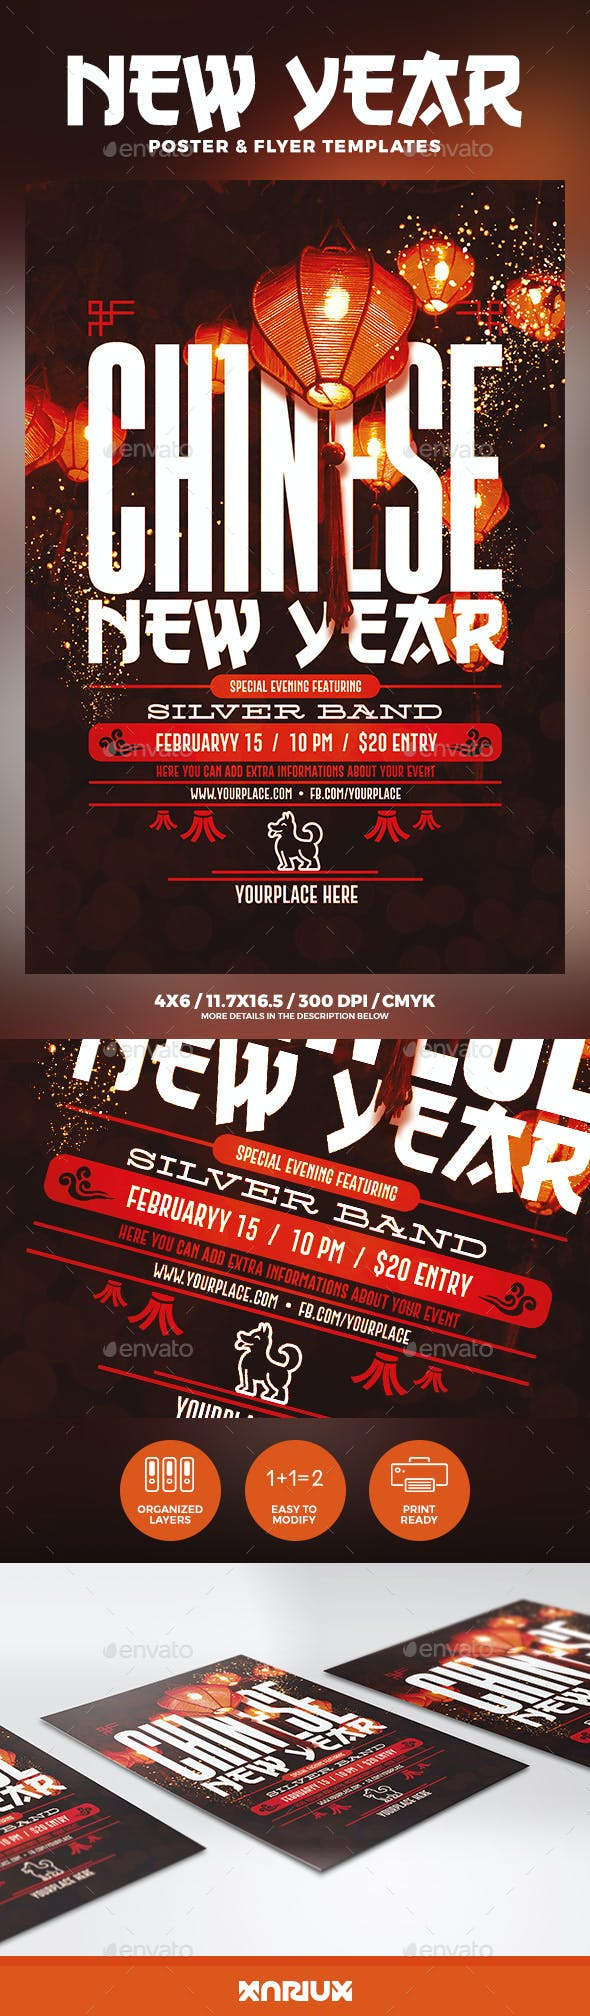 chinese new year flyer poster holidays events